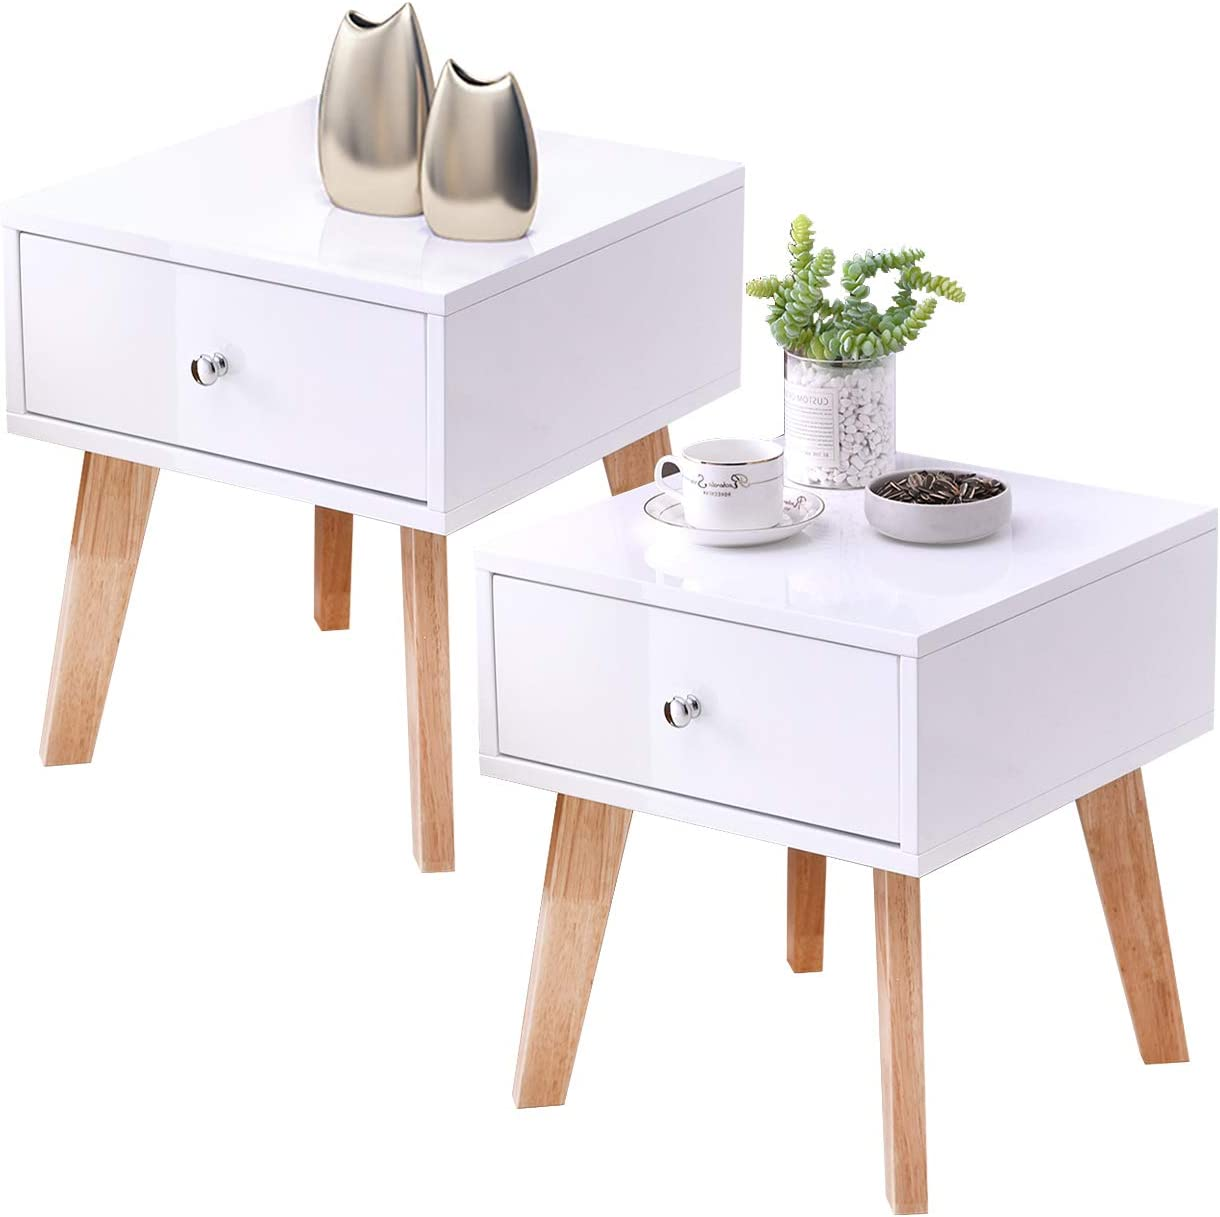 TaoHFE Nightstands Modern Nightstand